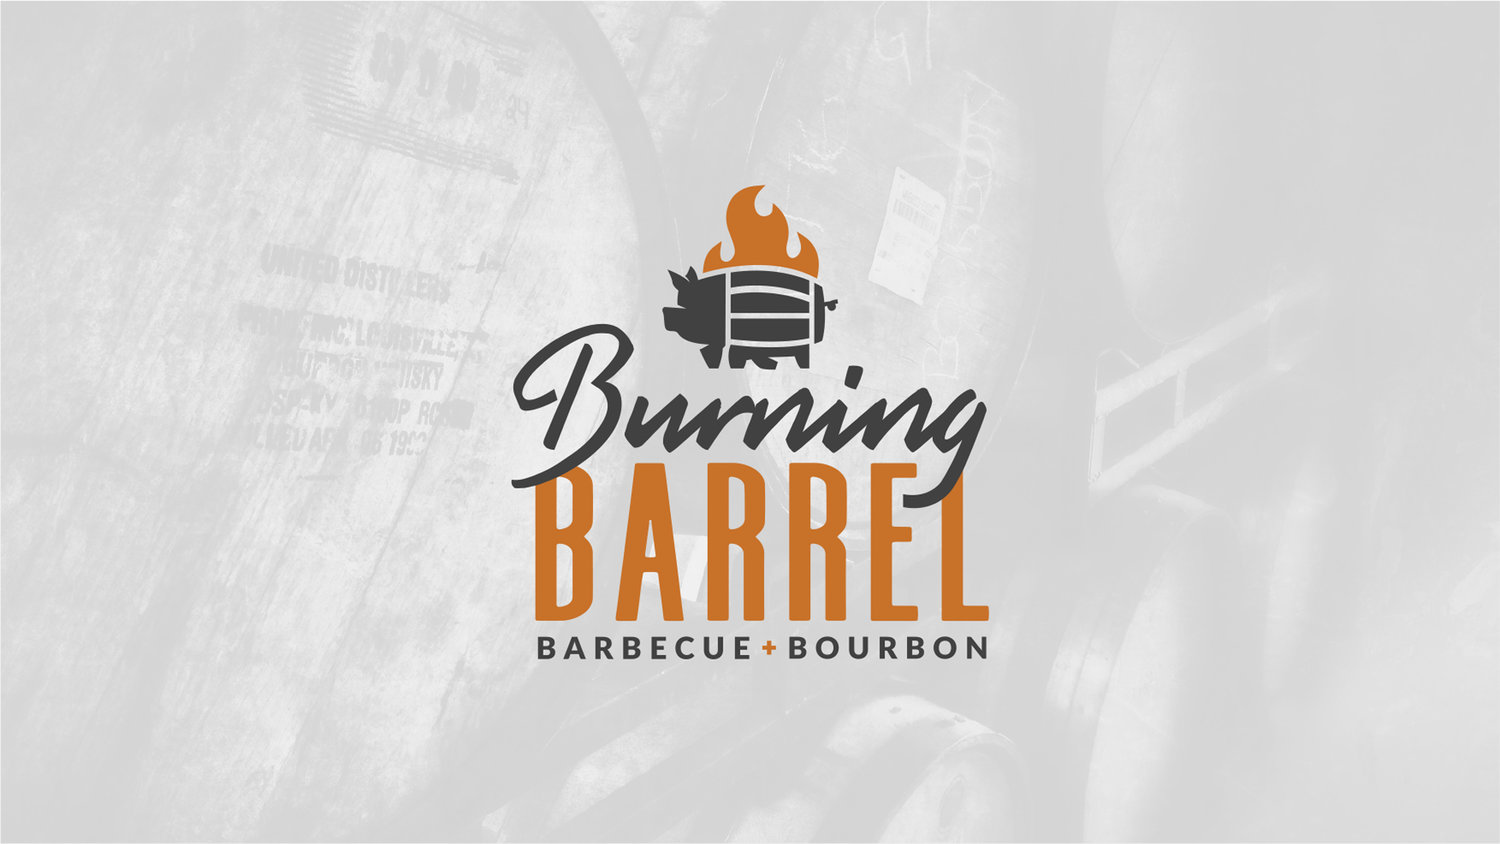 BBQ and Bourbon Packaging for BBQ Restaurant